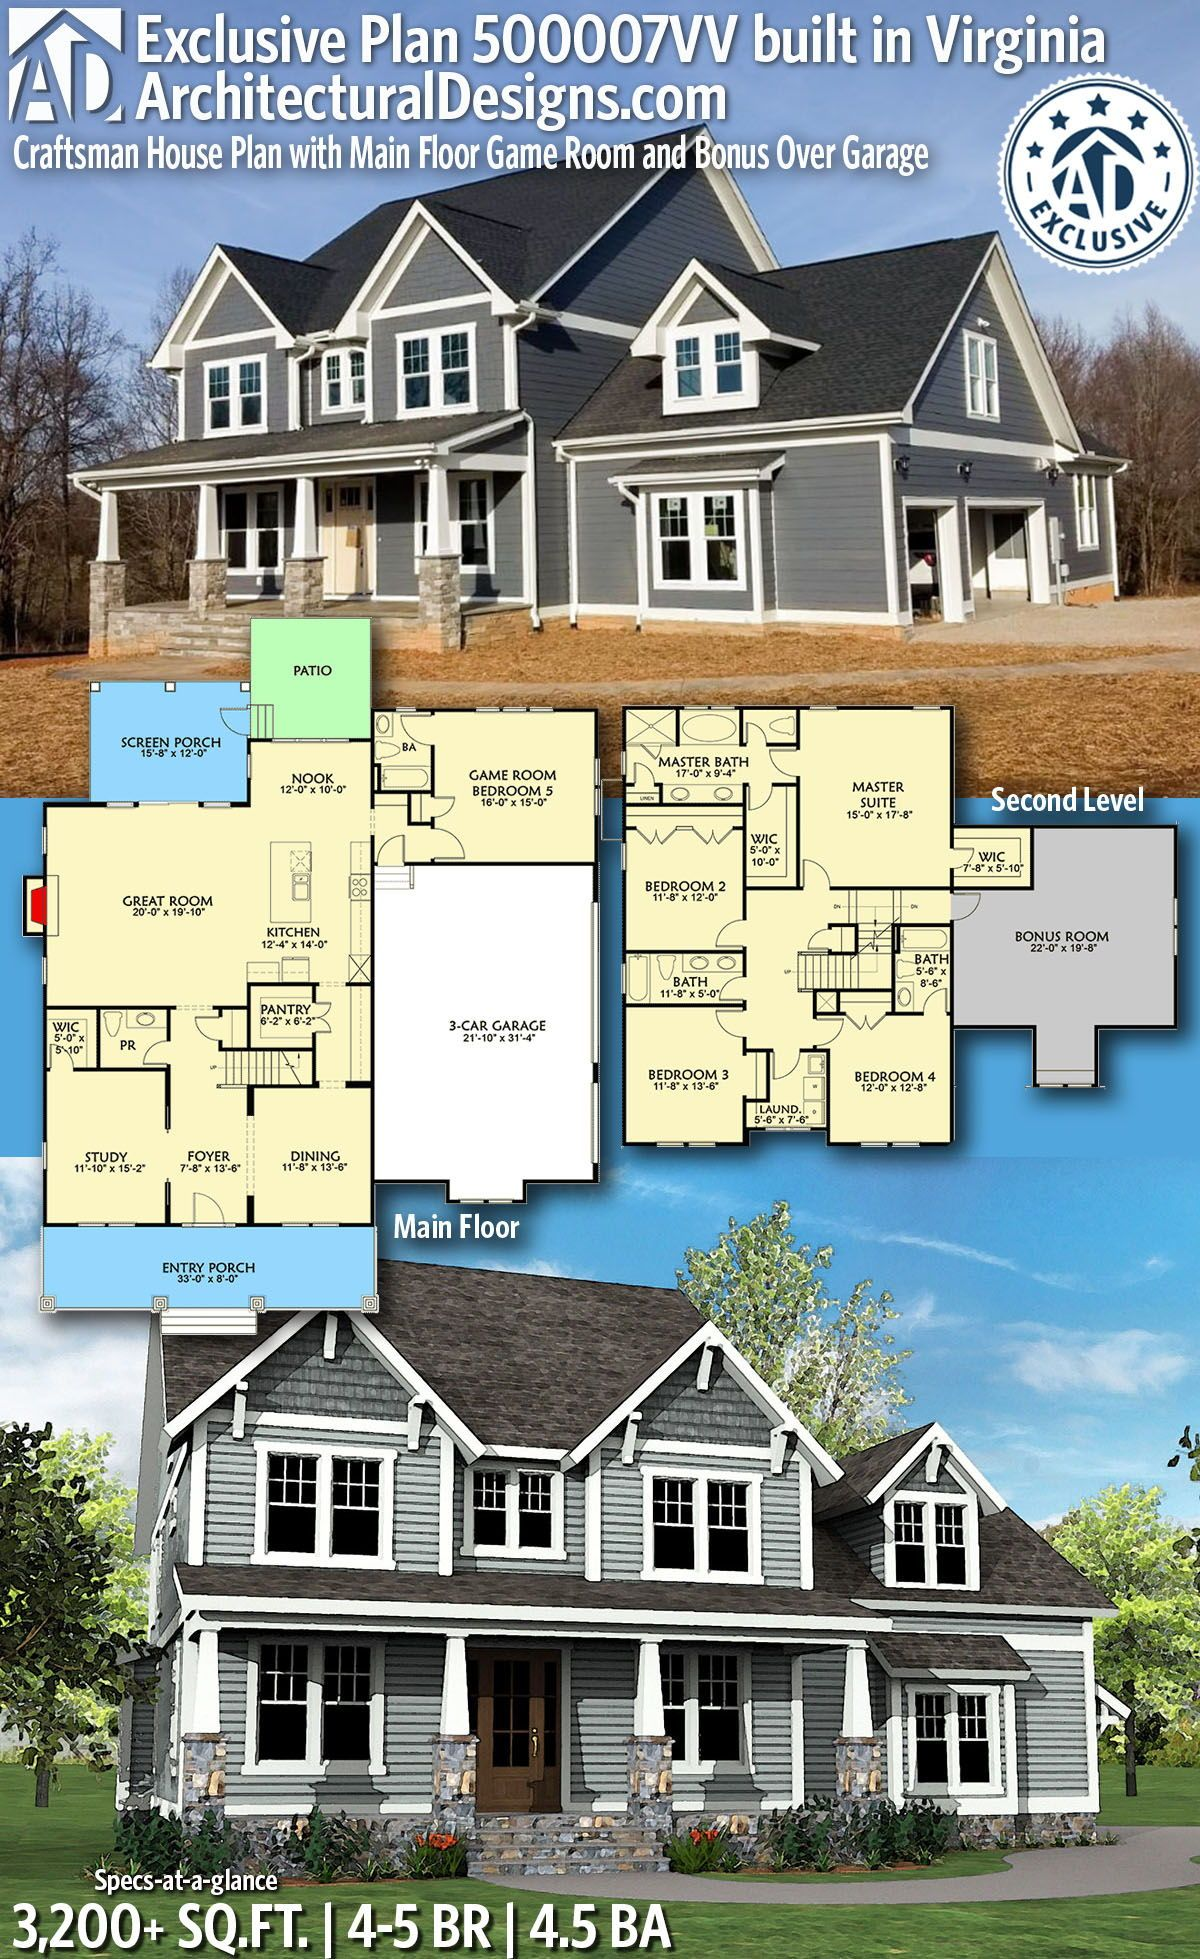 Photo of Plan 500007VV: Craftsman House Plan with Main Floor Game Room and Bonus Over Garage